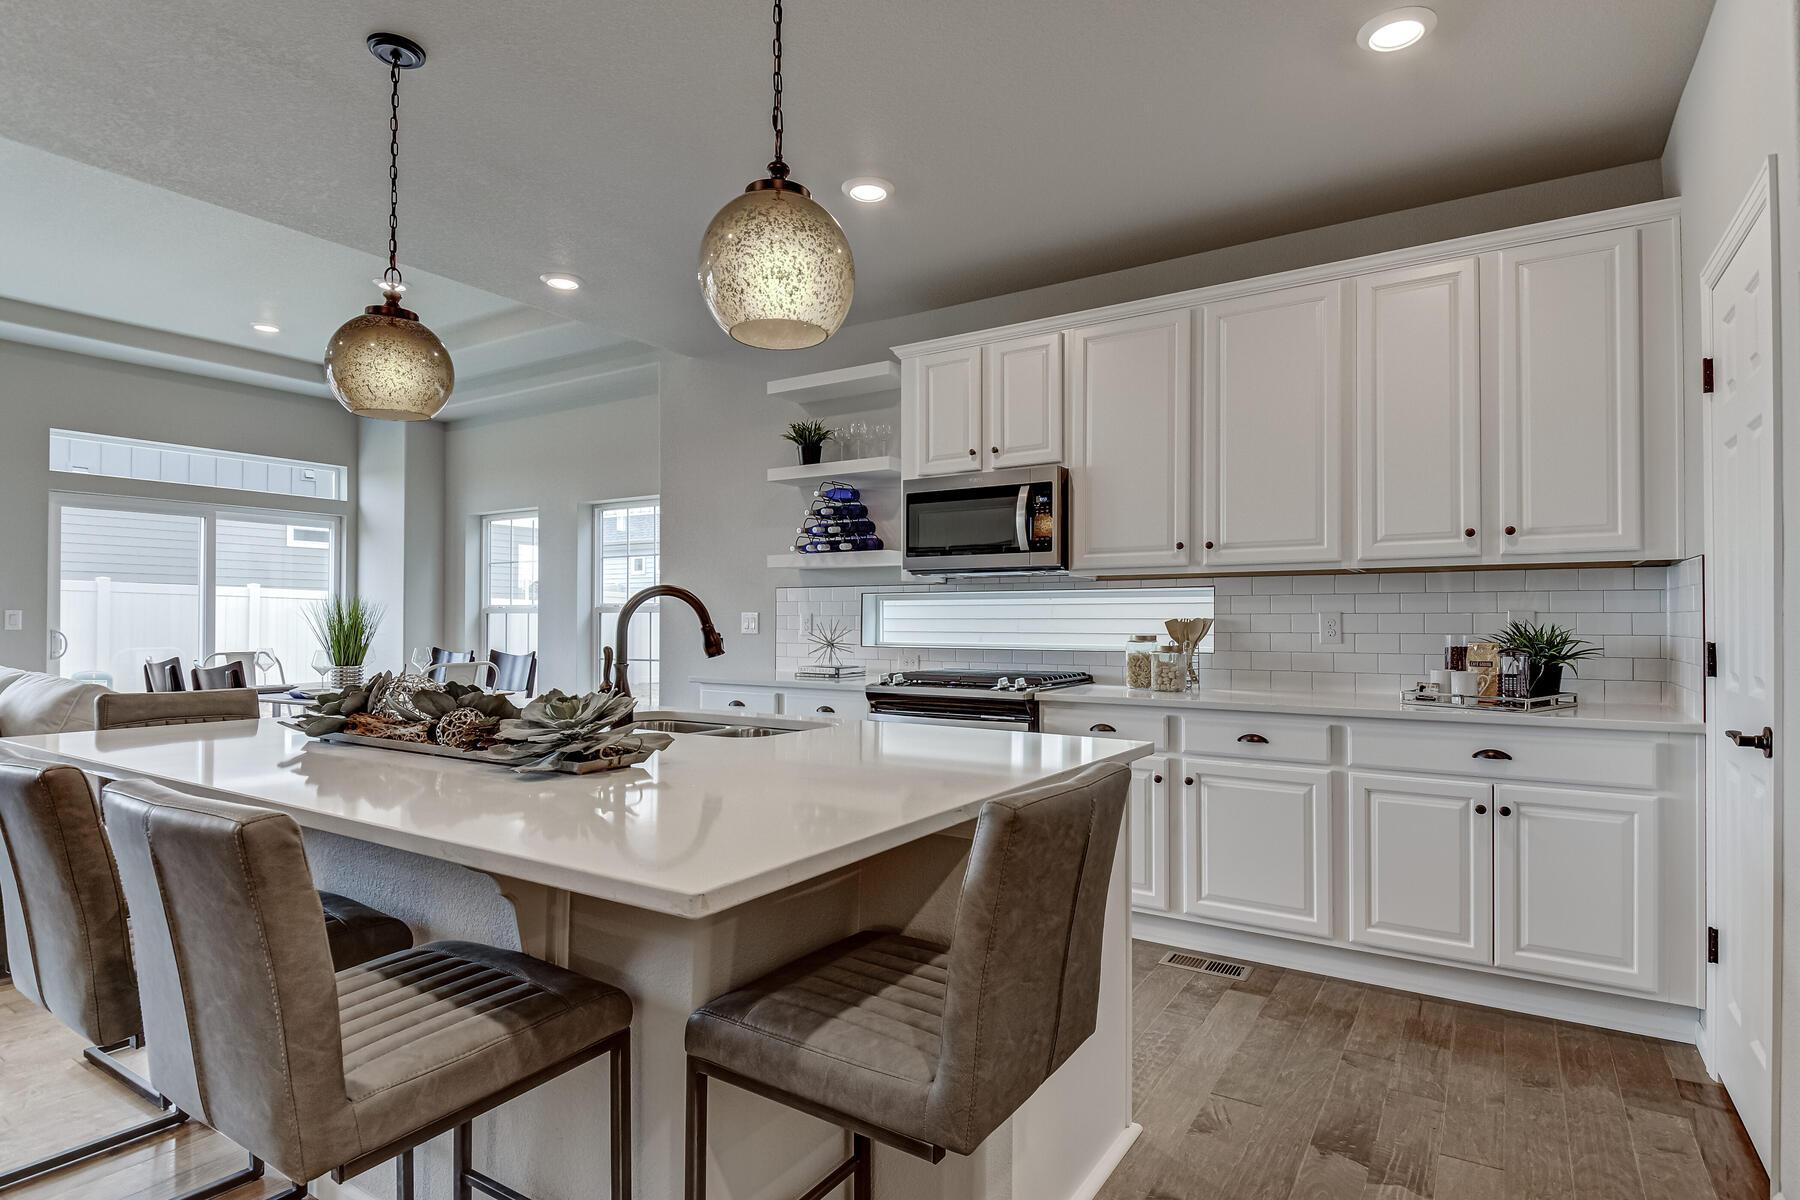 Kitchen featured in the Hideaway By OakwoodLife in Denver, CO